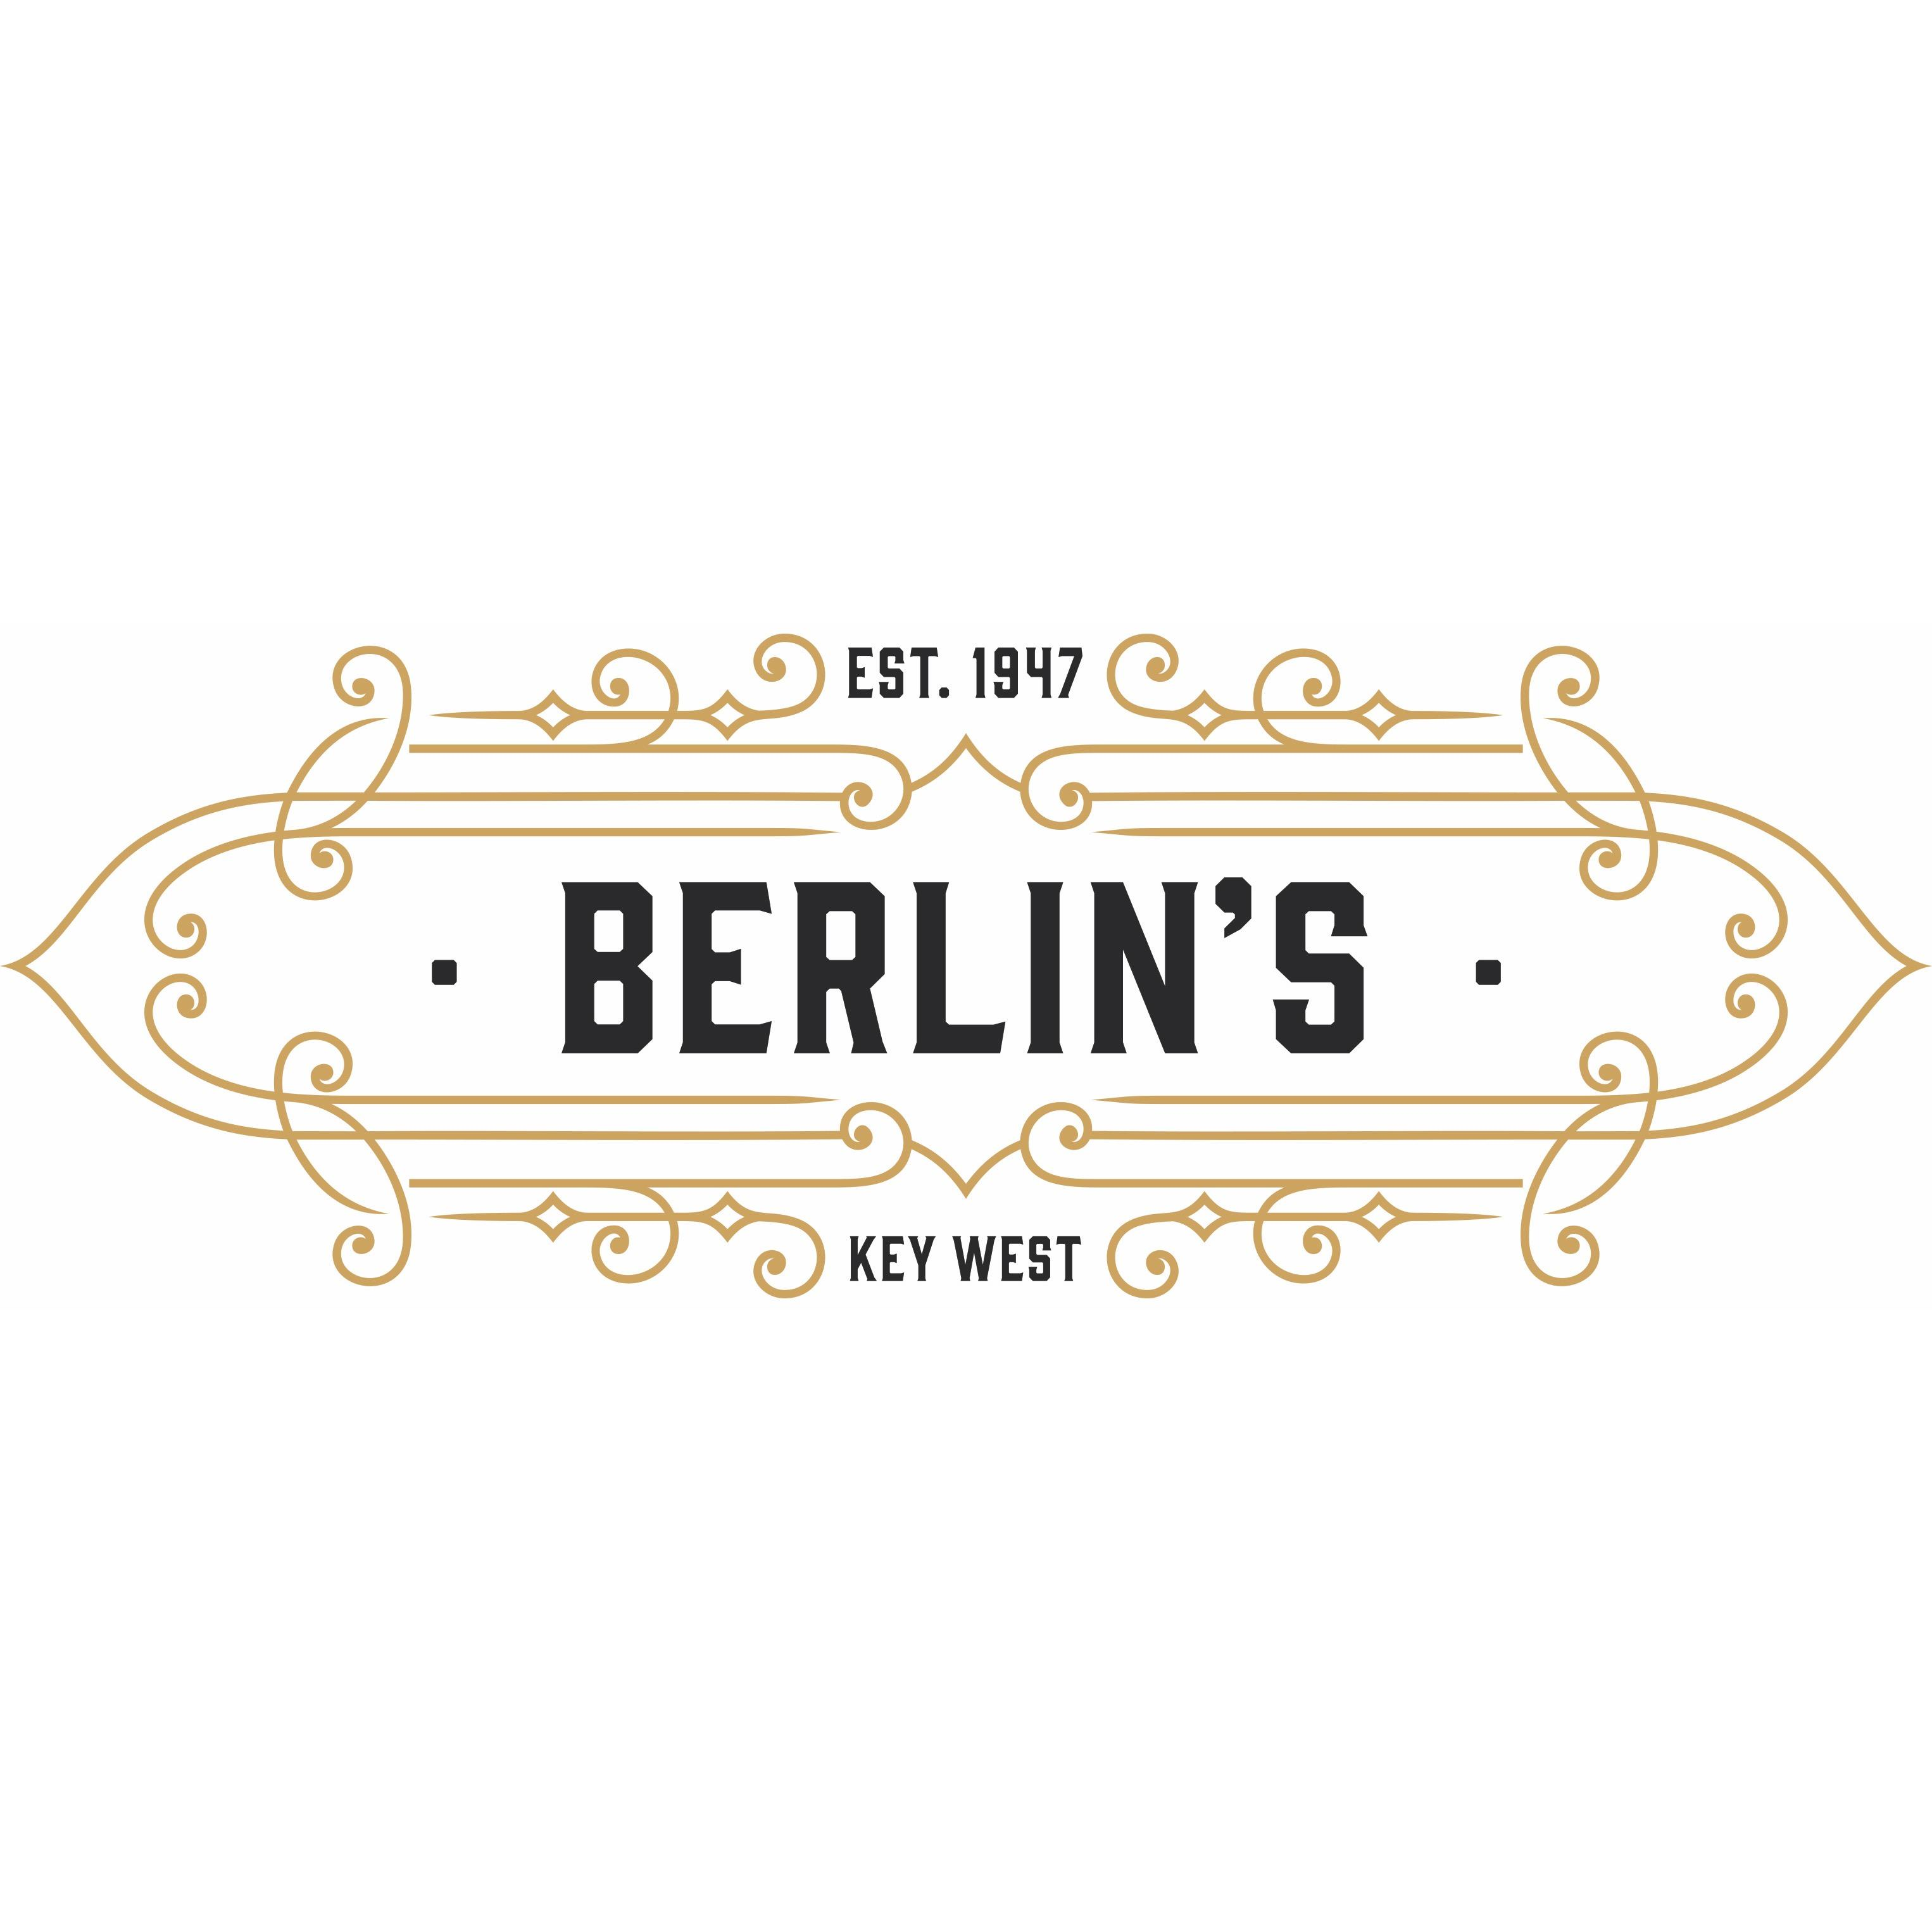 Berlin's Cocktail Bar & Lounge - Key West, FL 33040 - (305)294-5880 | ShowMeLocal.com